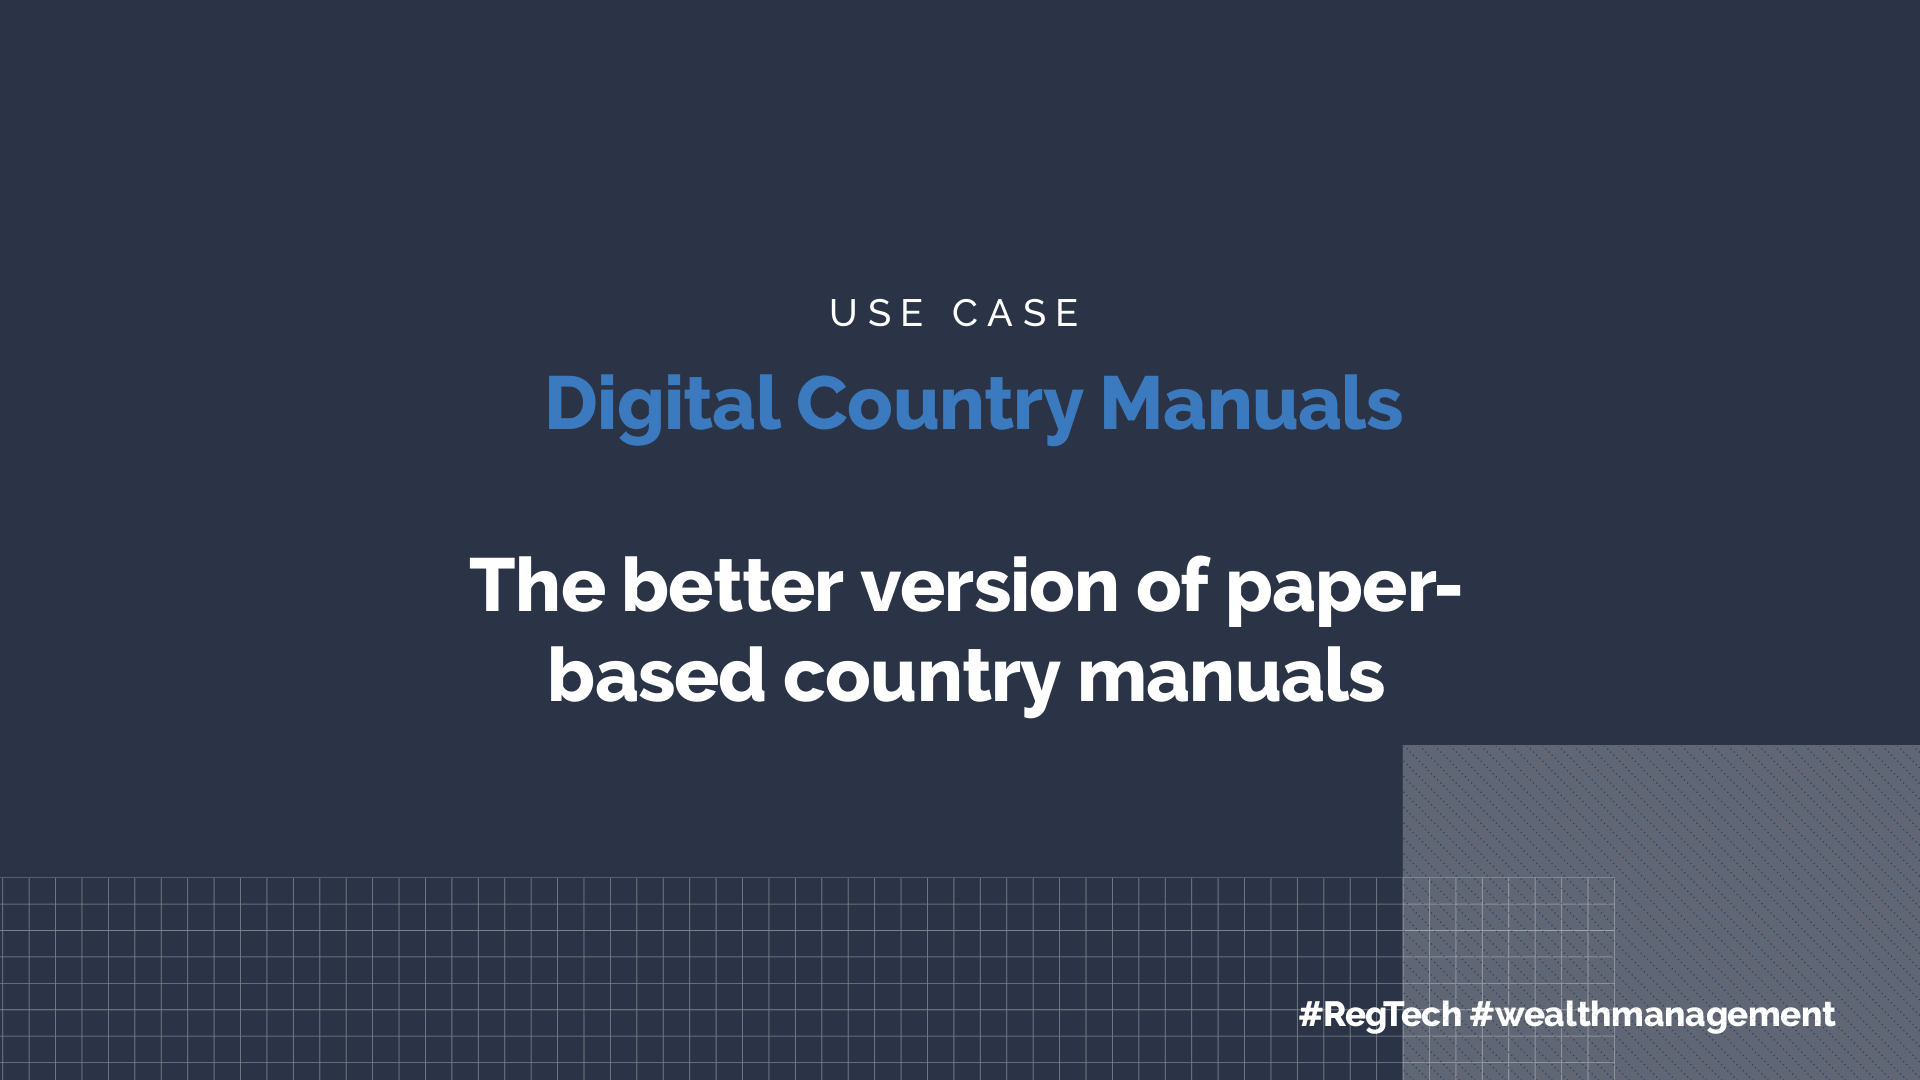 Digital Country Manuals